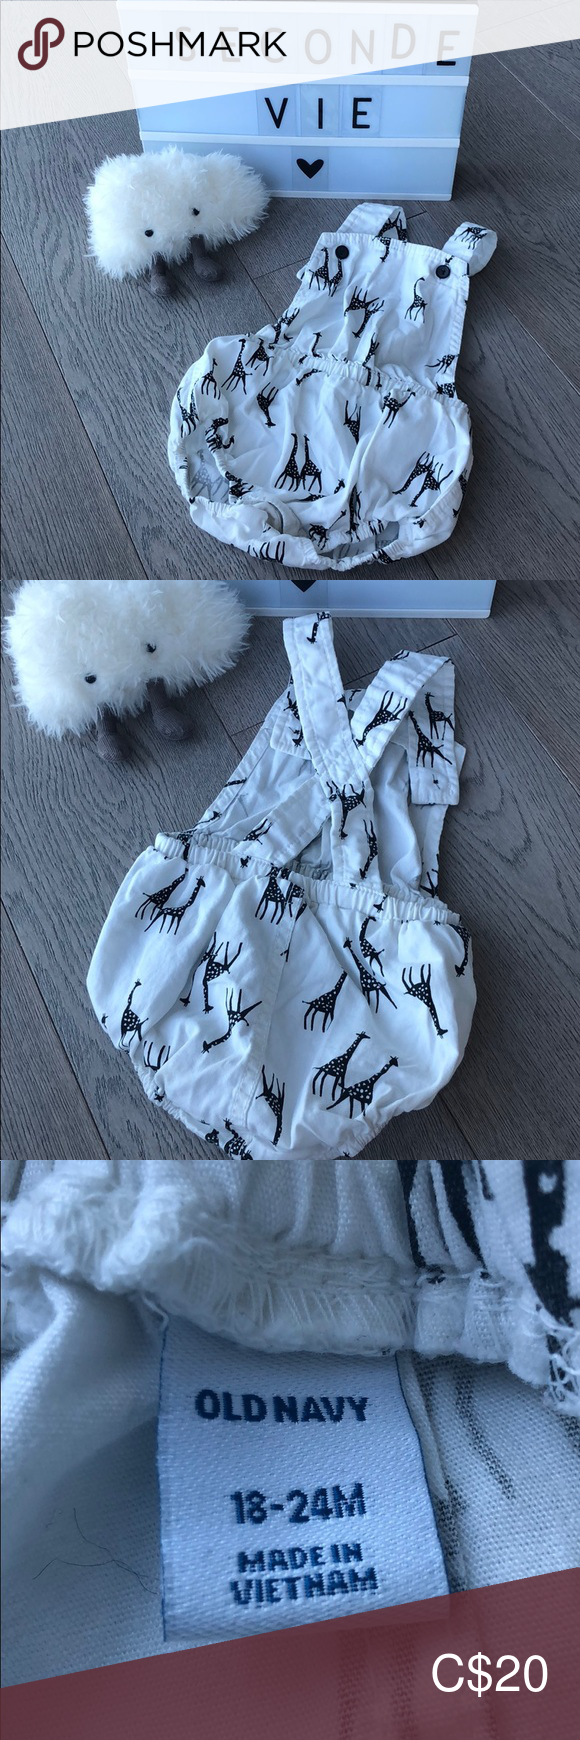 Old navy romper with giraffe pattern for baby Size 18-24 months. White with black giraffes. Button enclosure on bottom. One of my favorite pieces for summer or vacations! Great condition. Comes from smoke free pet free home. Buy 3, get 10% off! Old Navy One Pieces #giraffepattern